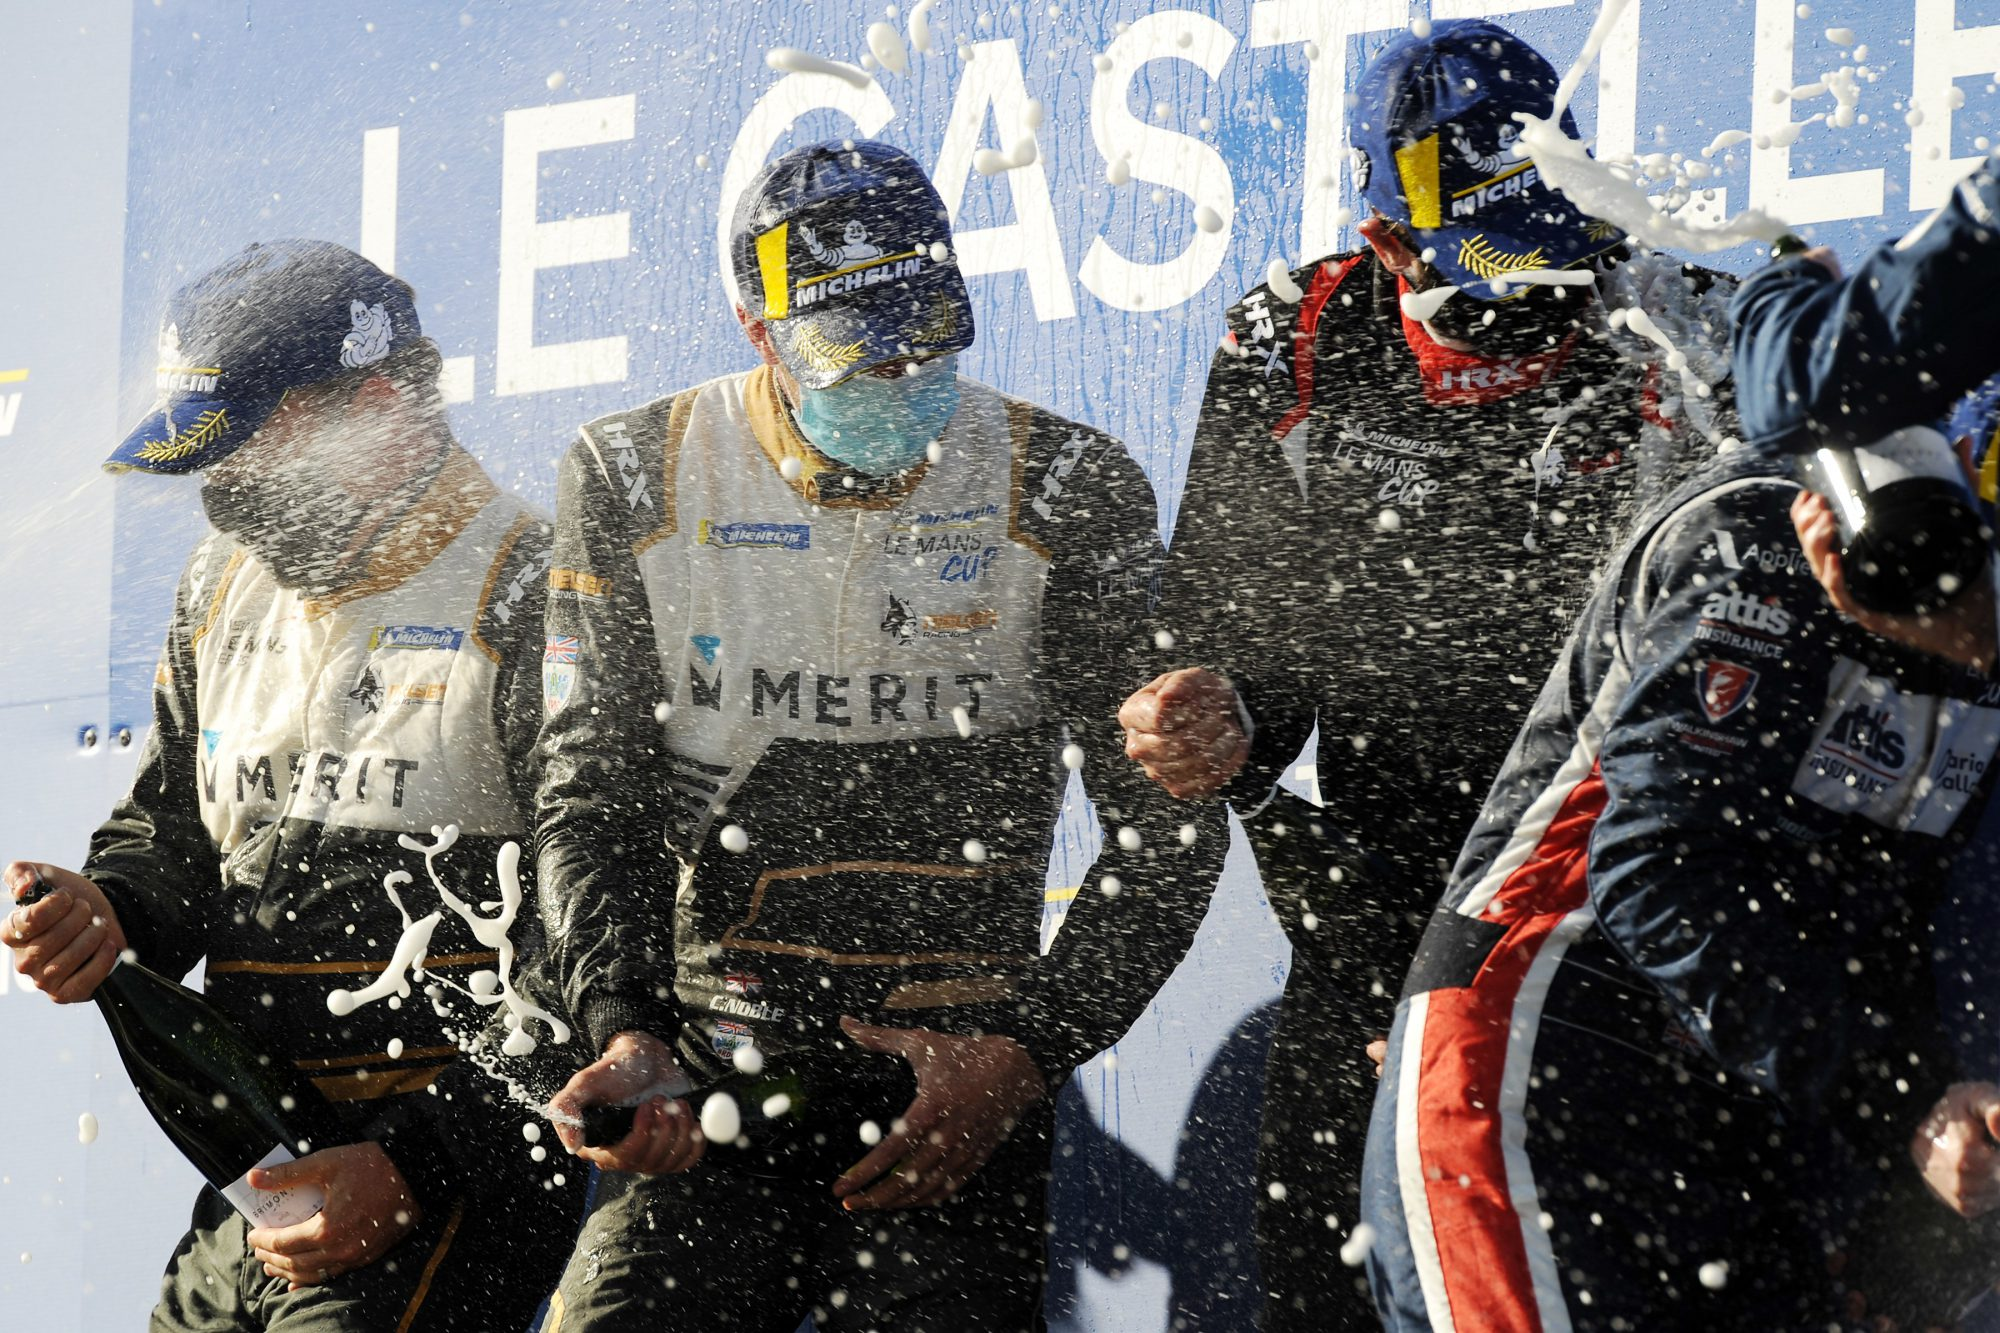 Nielsen Racing 14 - First Michelin LMC victory of the season